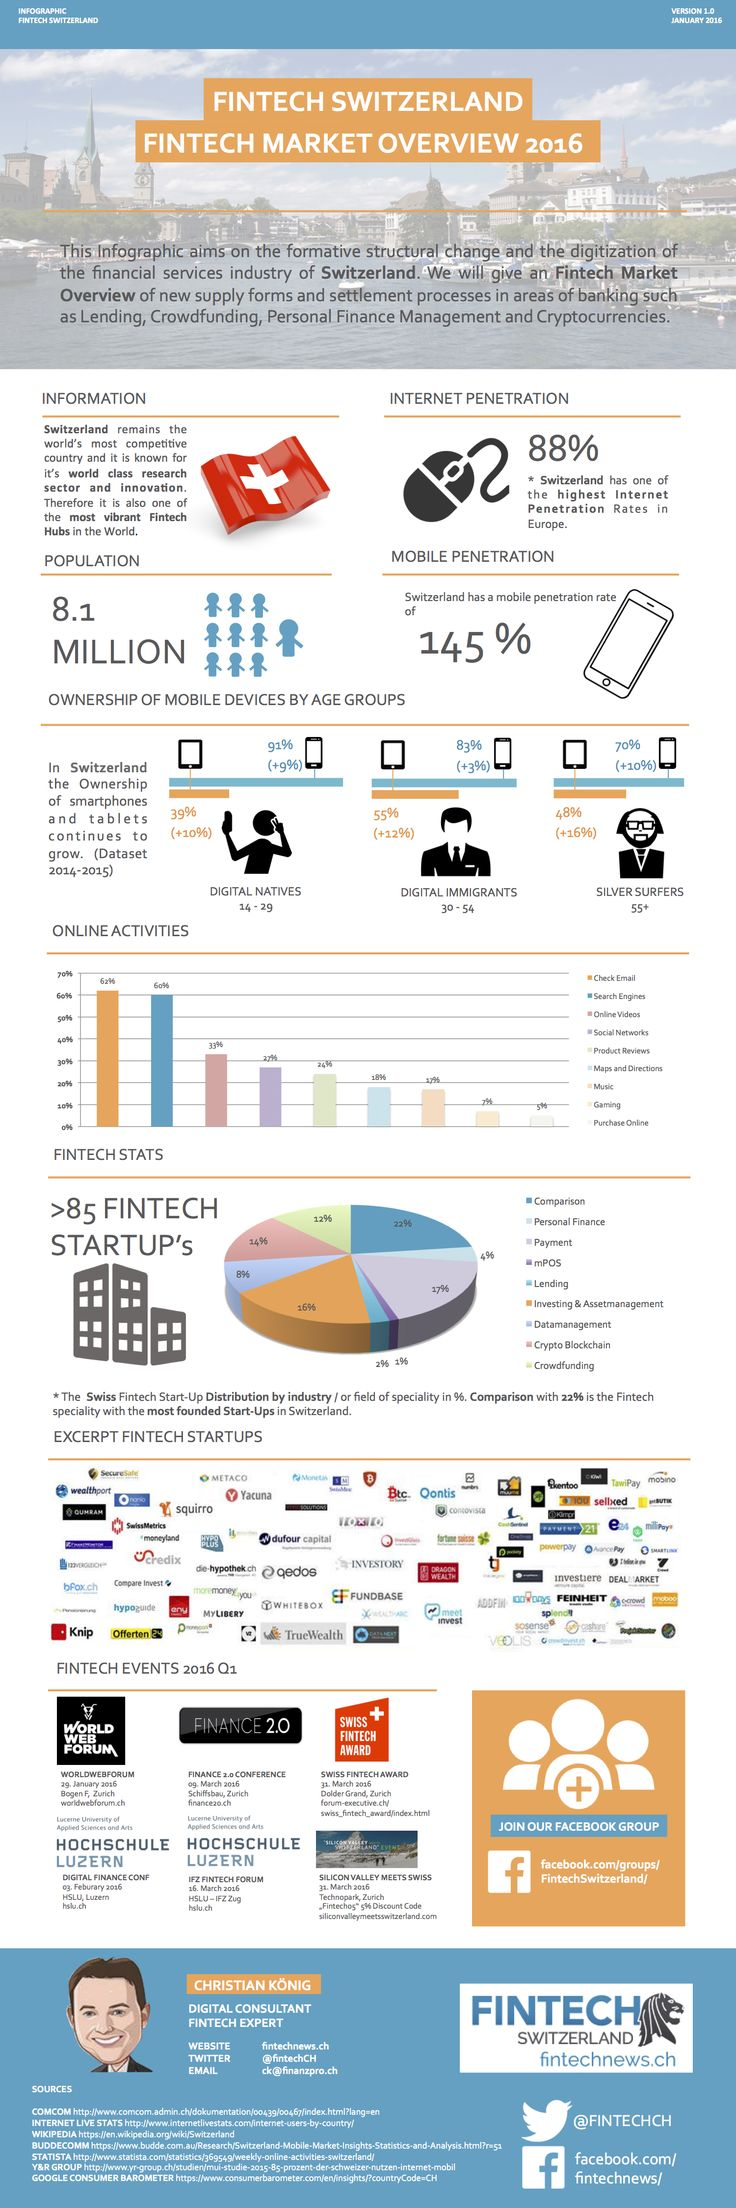 Fintech Switzerland Infographic 2016